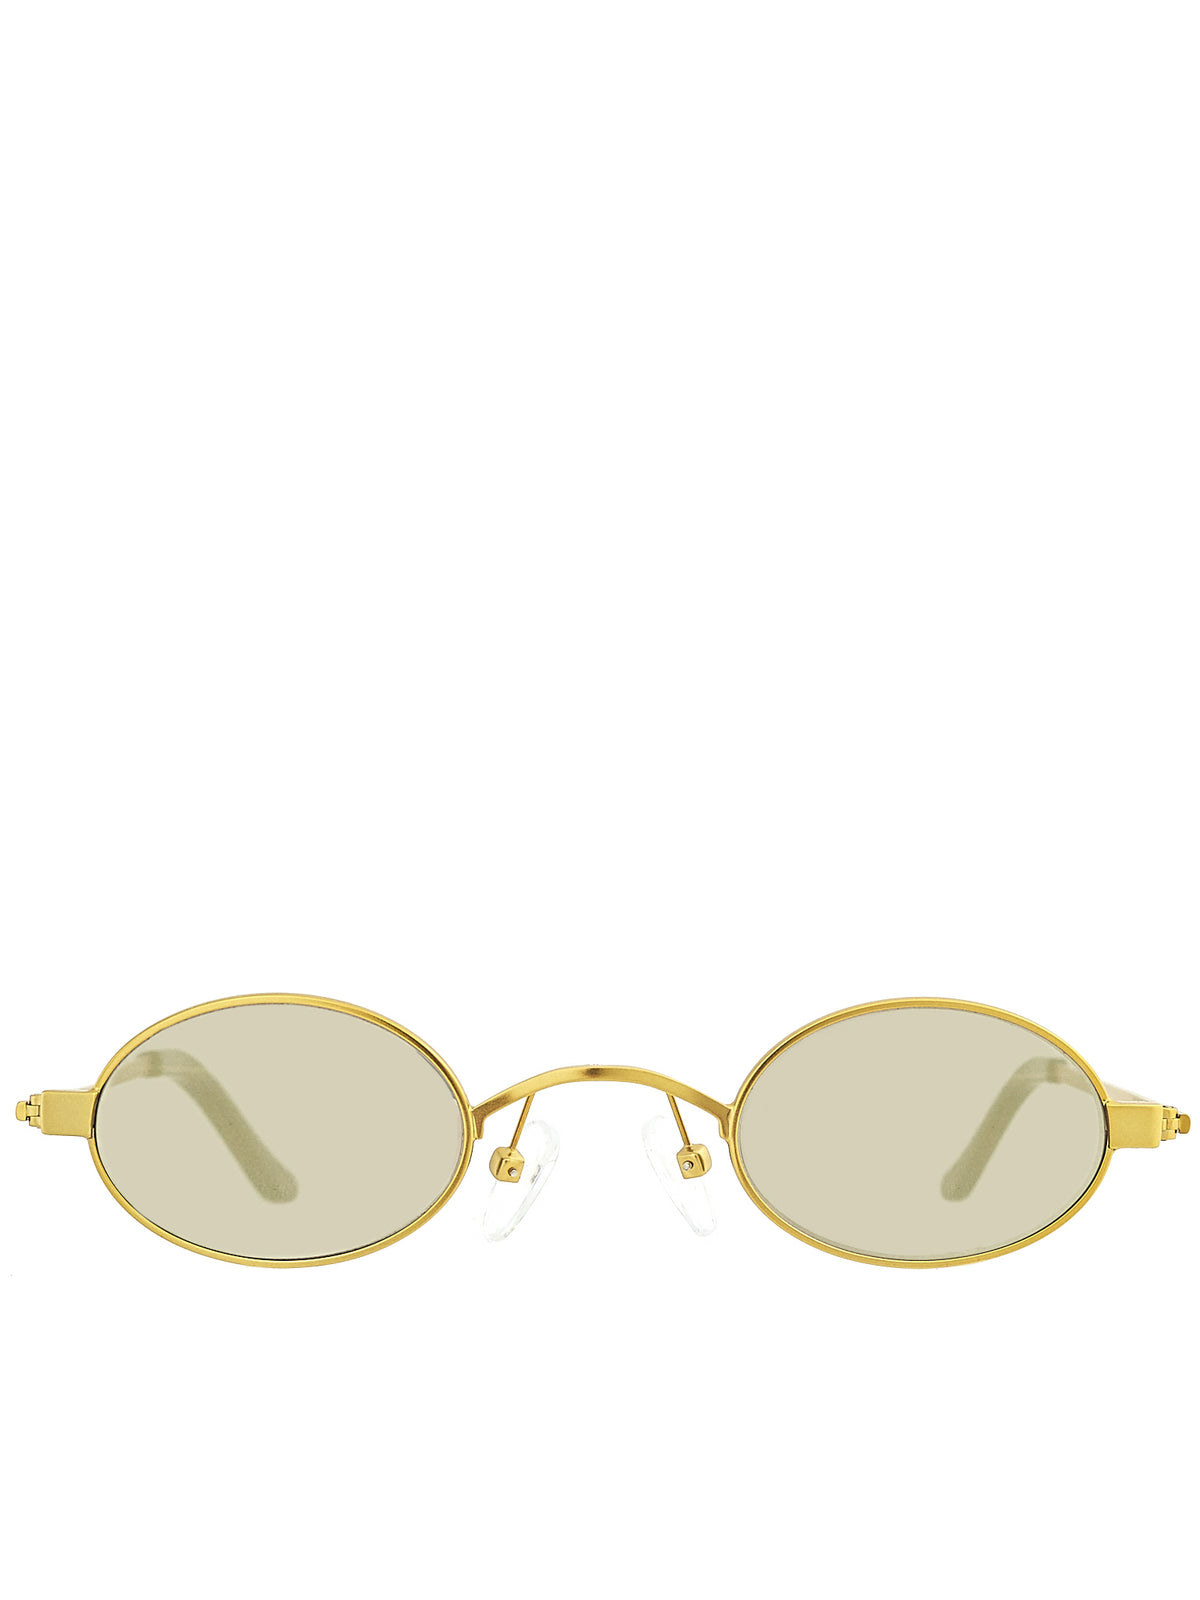 Roberi & Fraud Gold Sunglasses - Hlorenzo Front